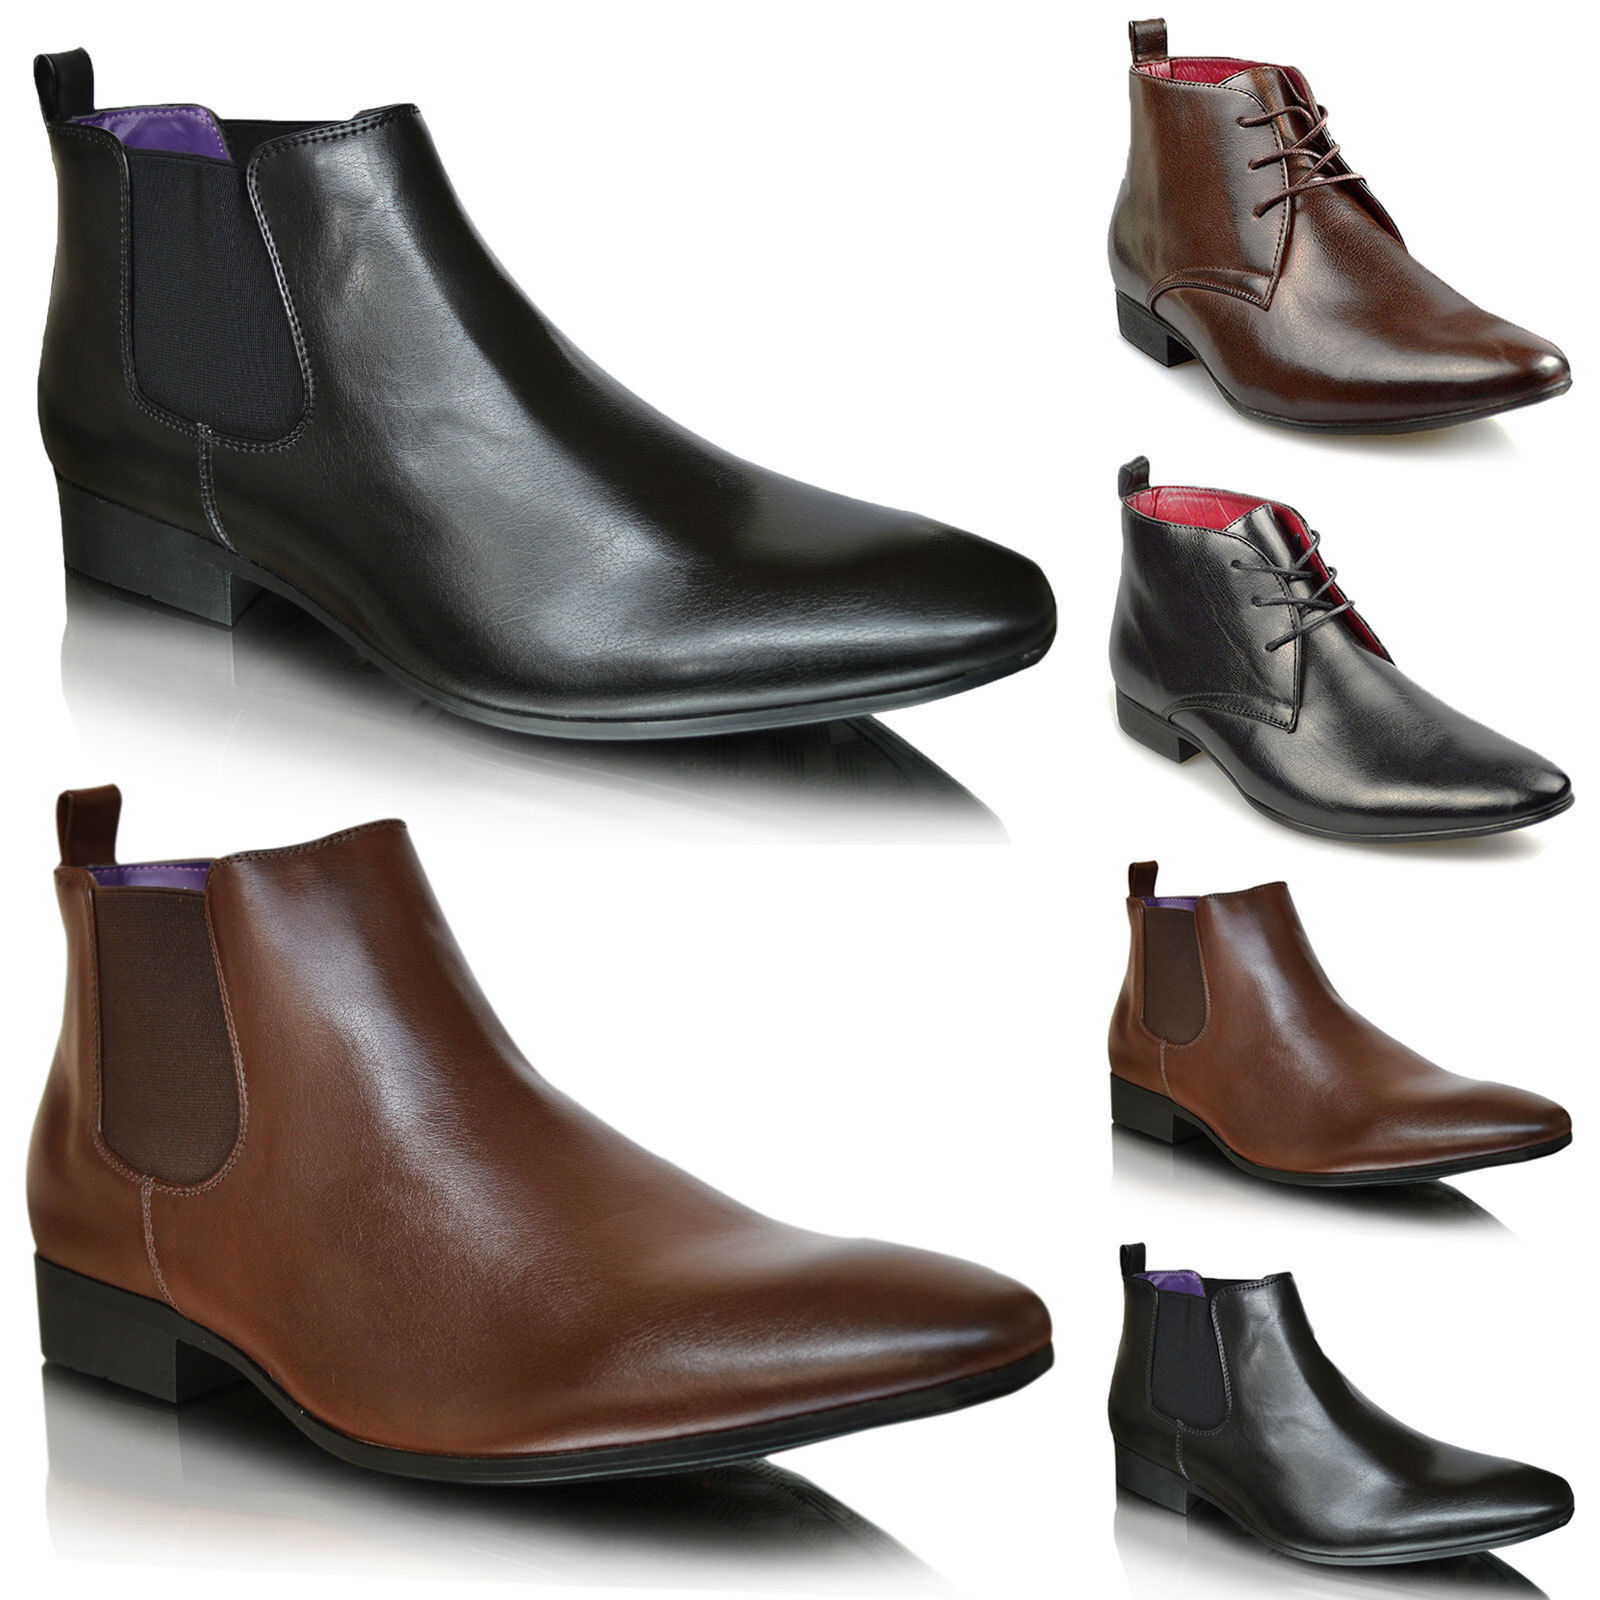 Xelay Mens Leather Smart Formal Dress Casual Chelsea Boots shoes UK SIZES 6-11